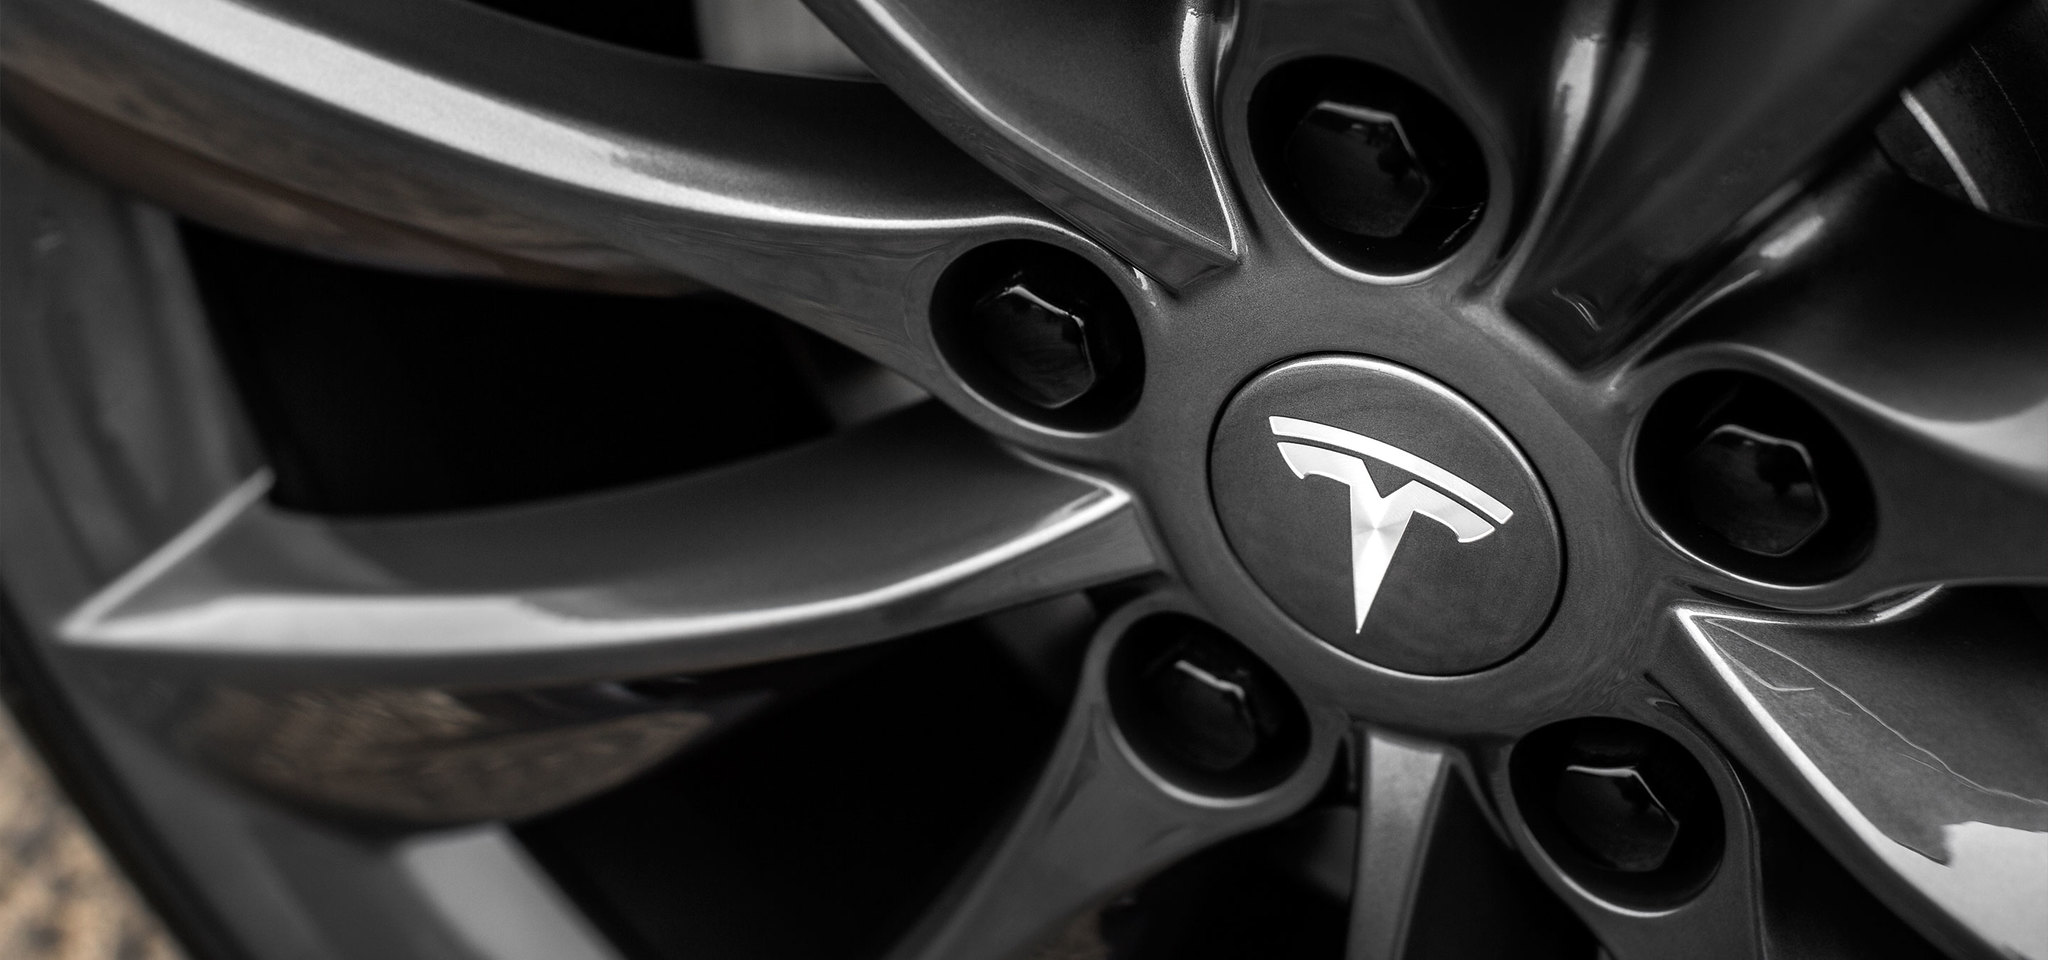 Could the Tesla Model 3 be within reach for most Americans?